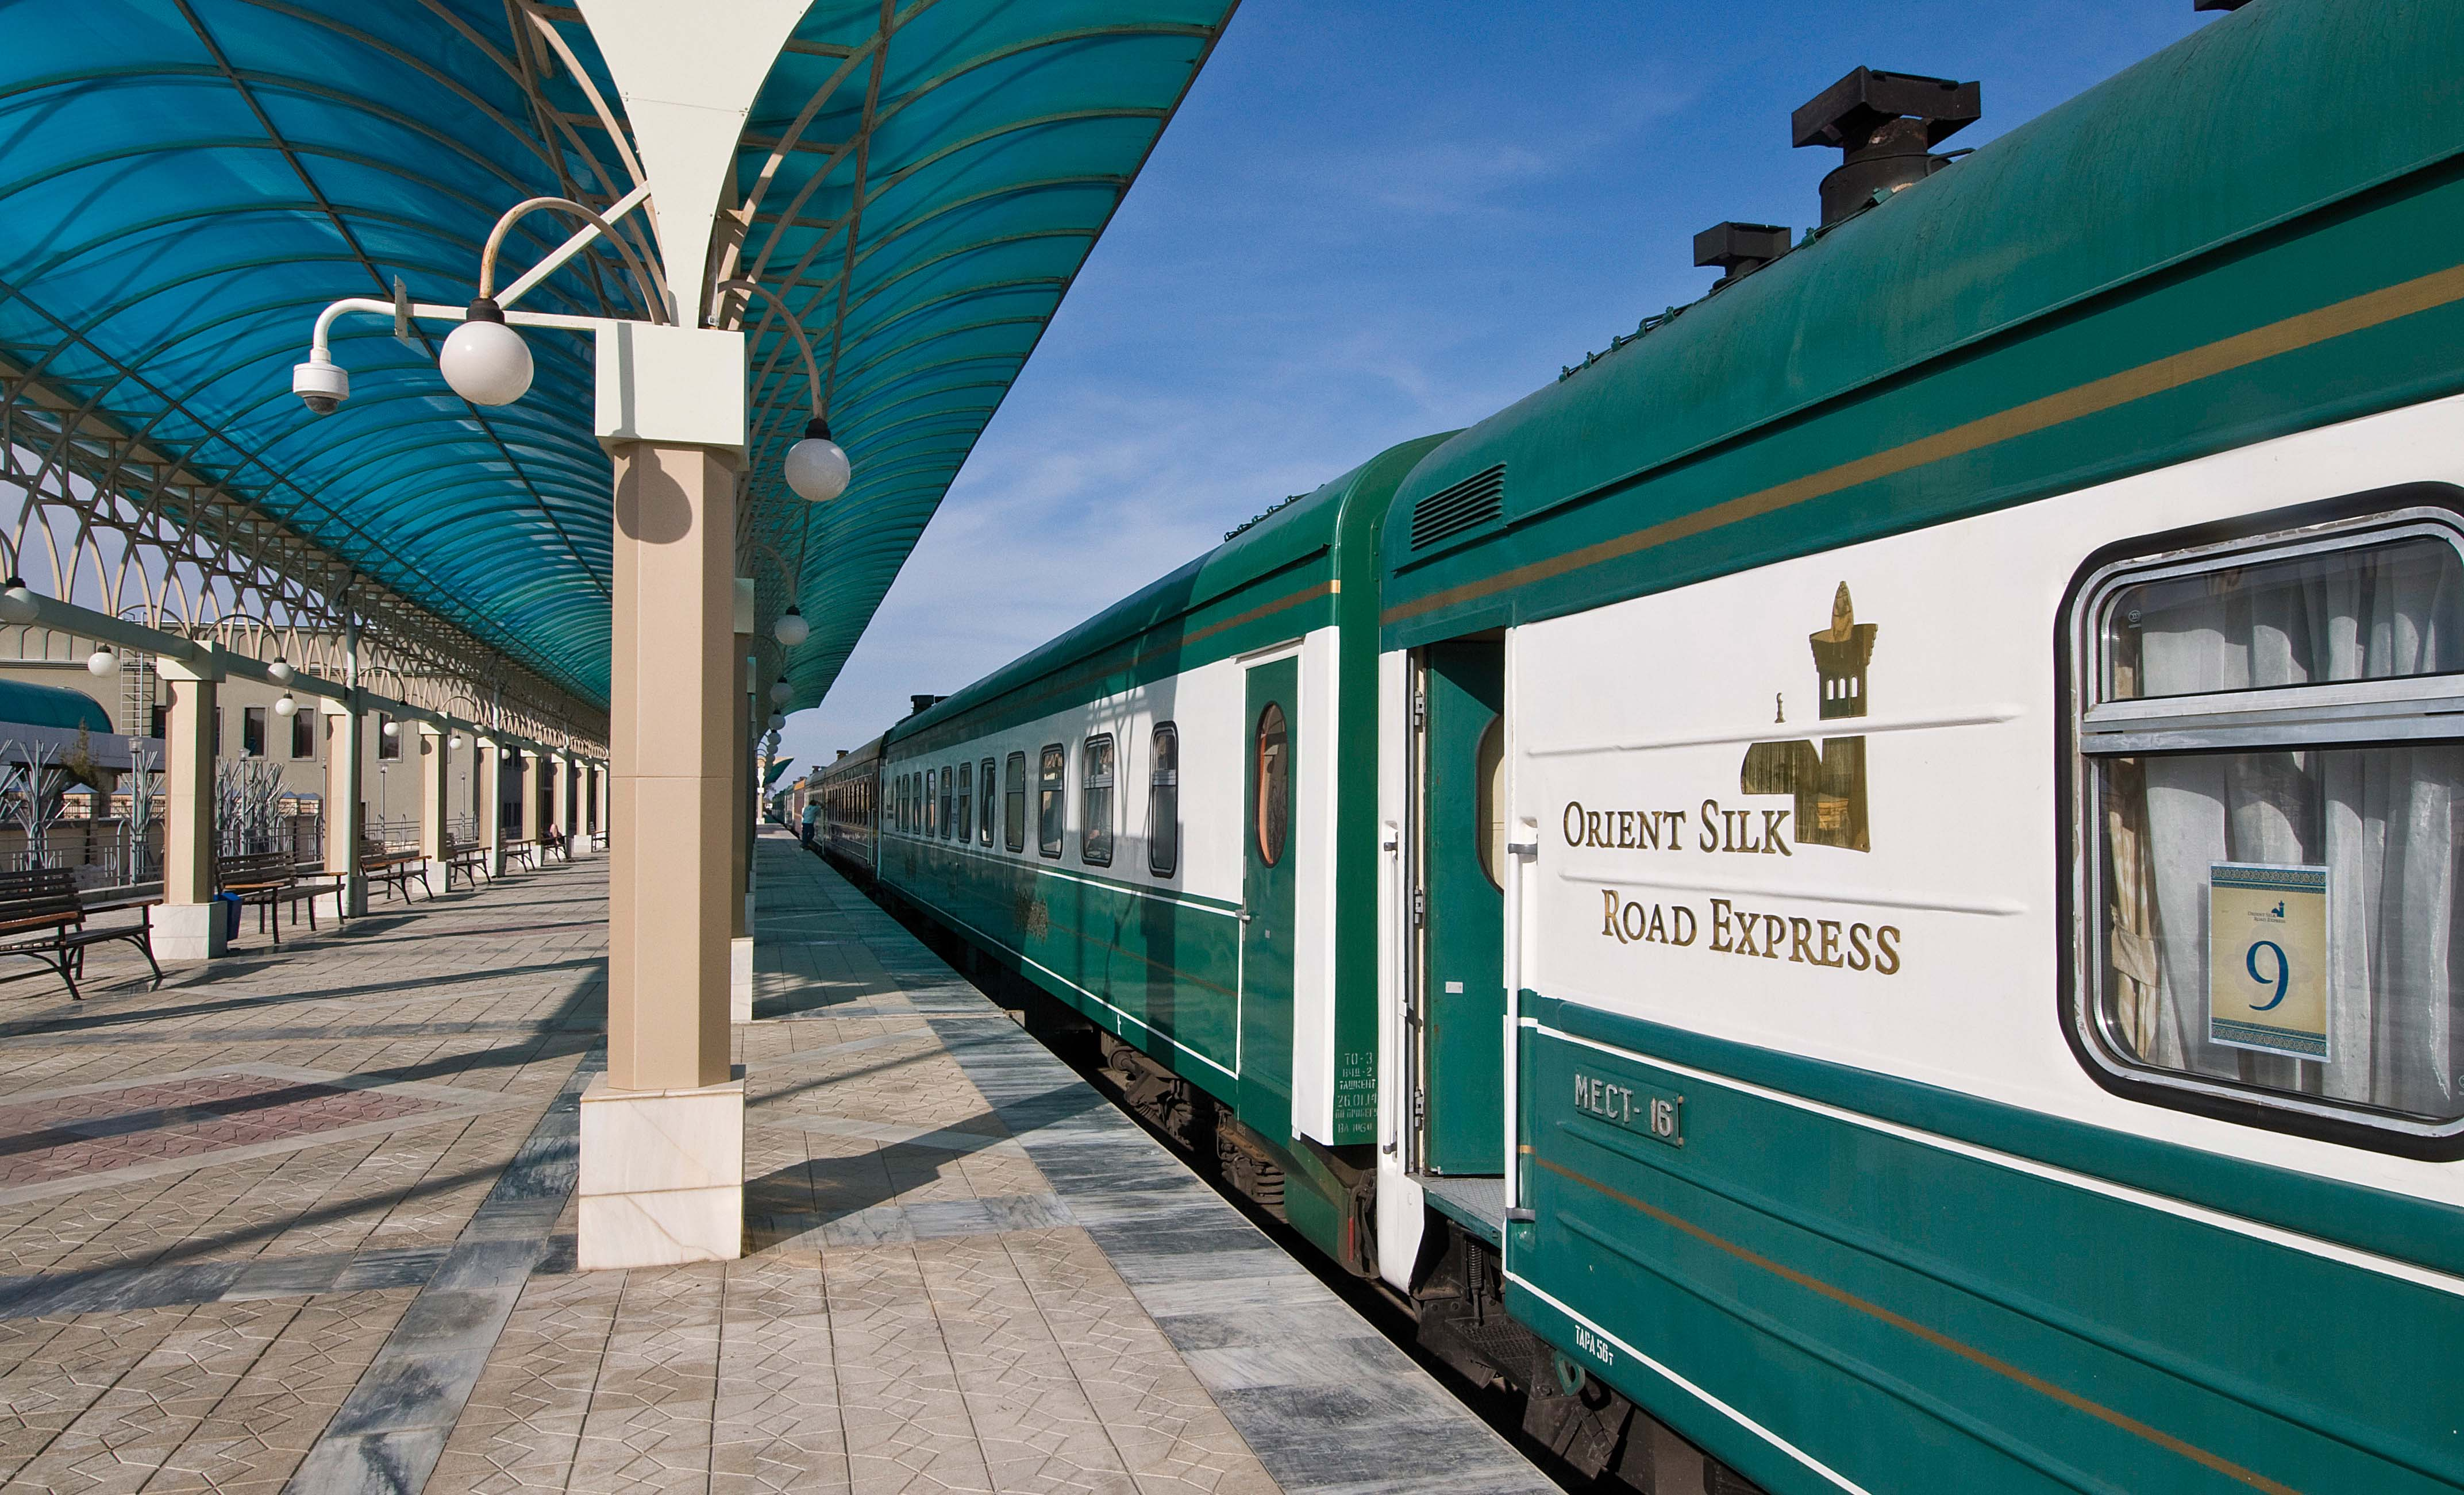 The Orient Silk Road Express